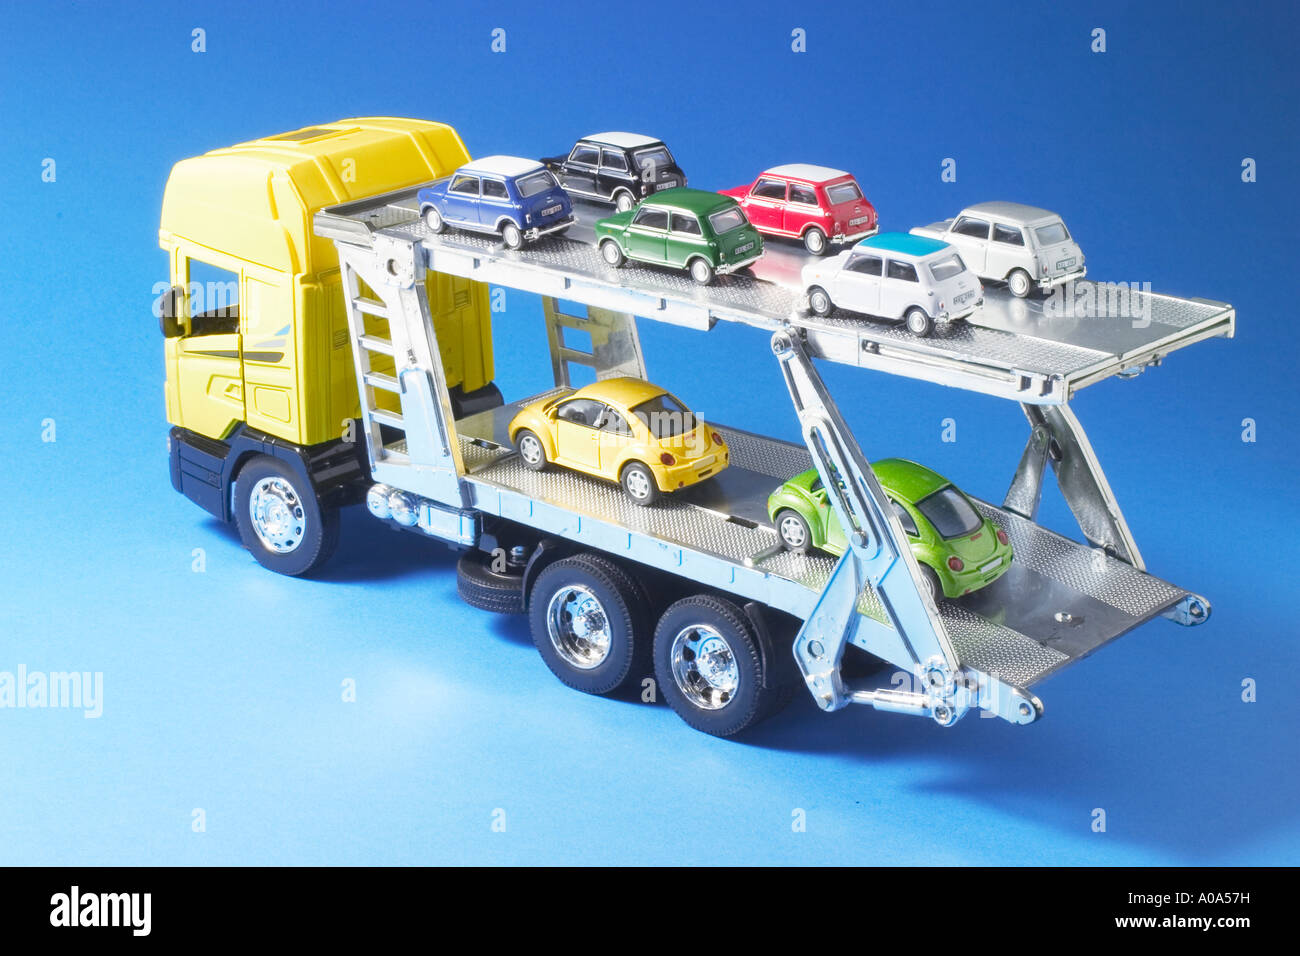 Toy Truck Carrying Miniature Cars Stock Photo 9930340 Alamy